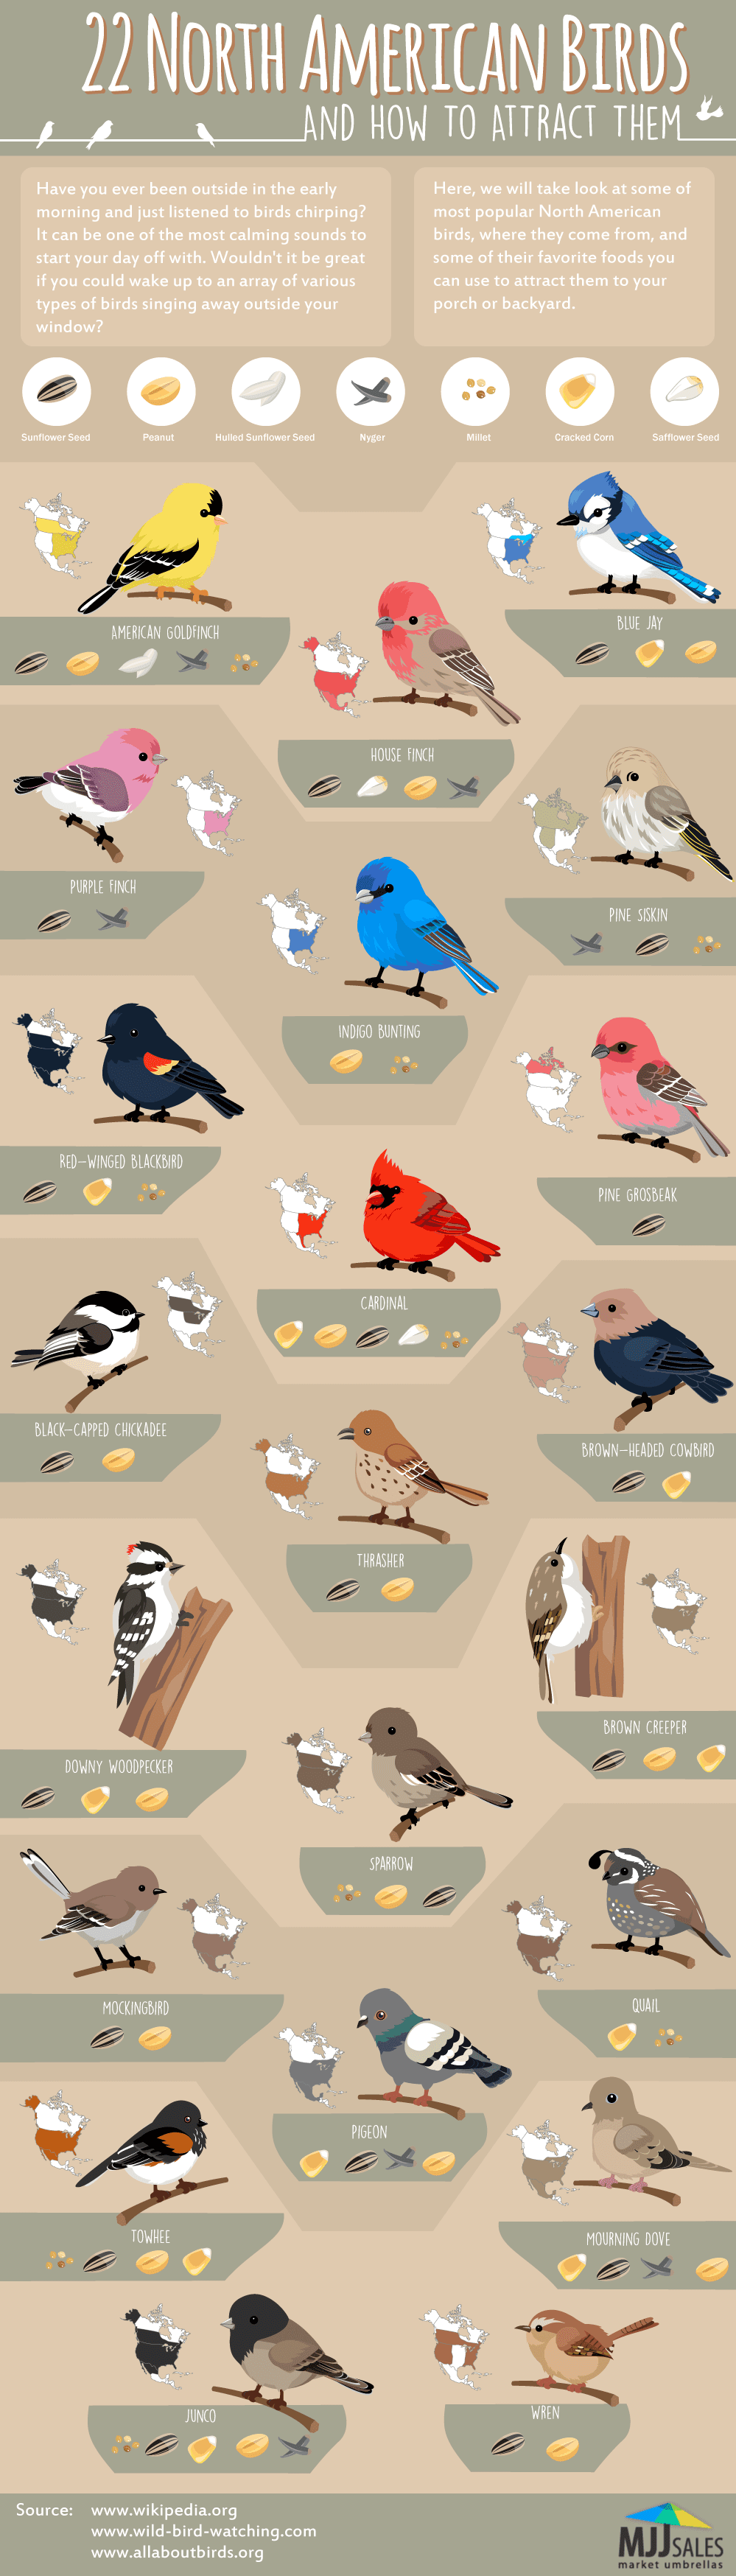 22 Popular North American Birds